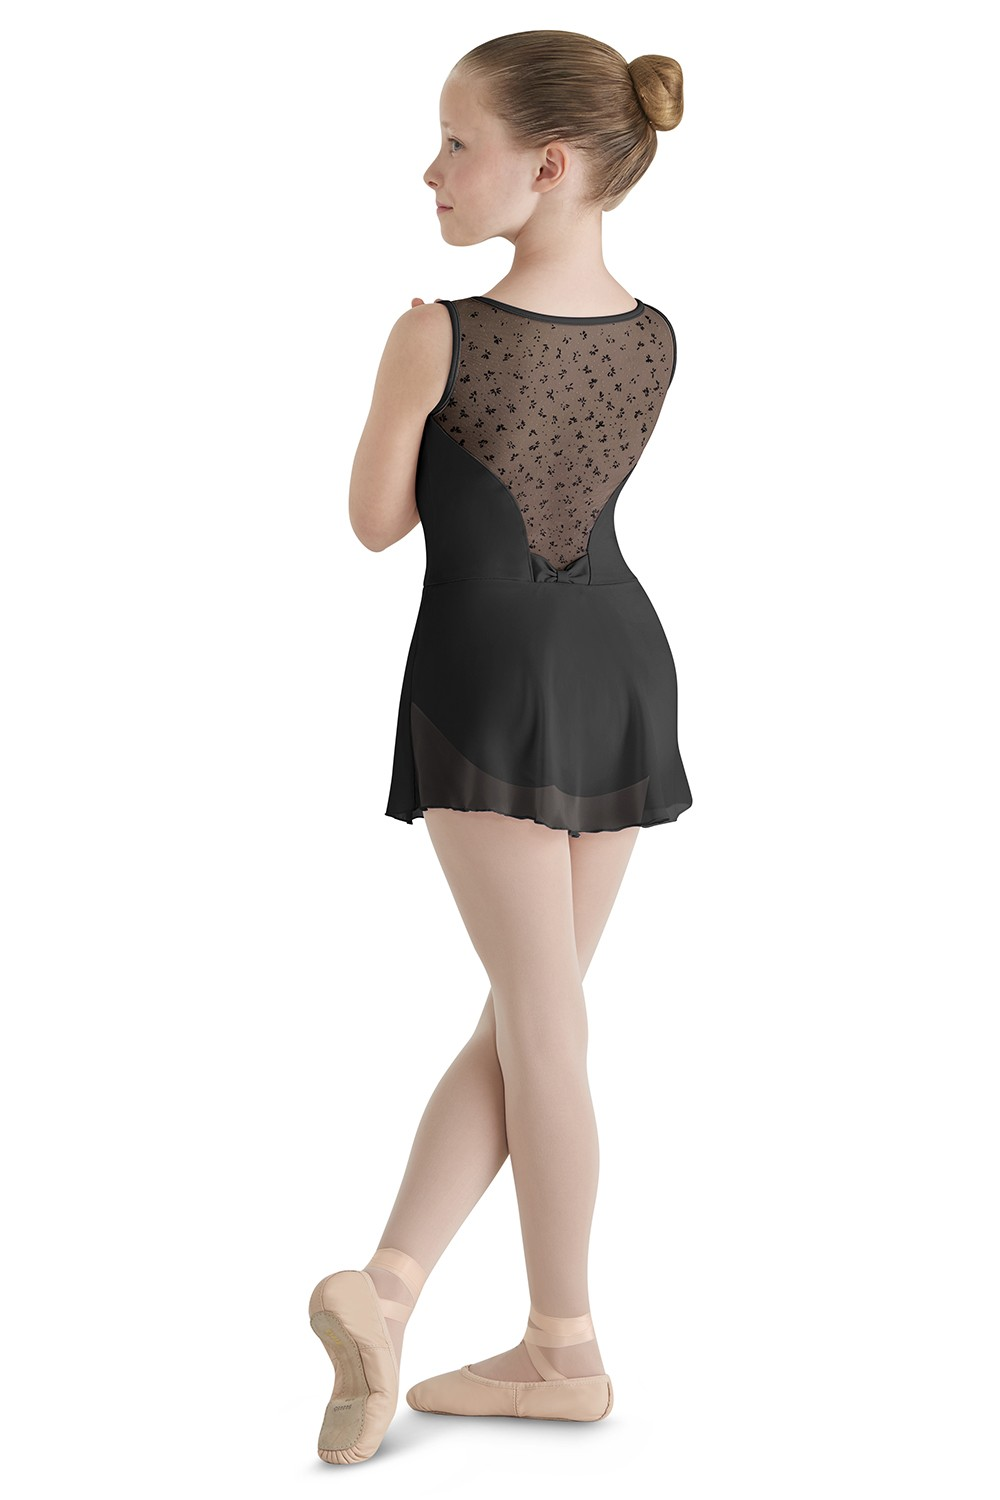 Skirted Tank Leotard Girls Skirted Leotards